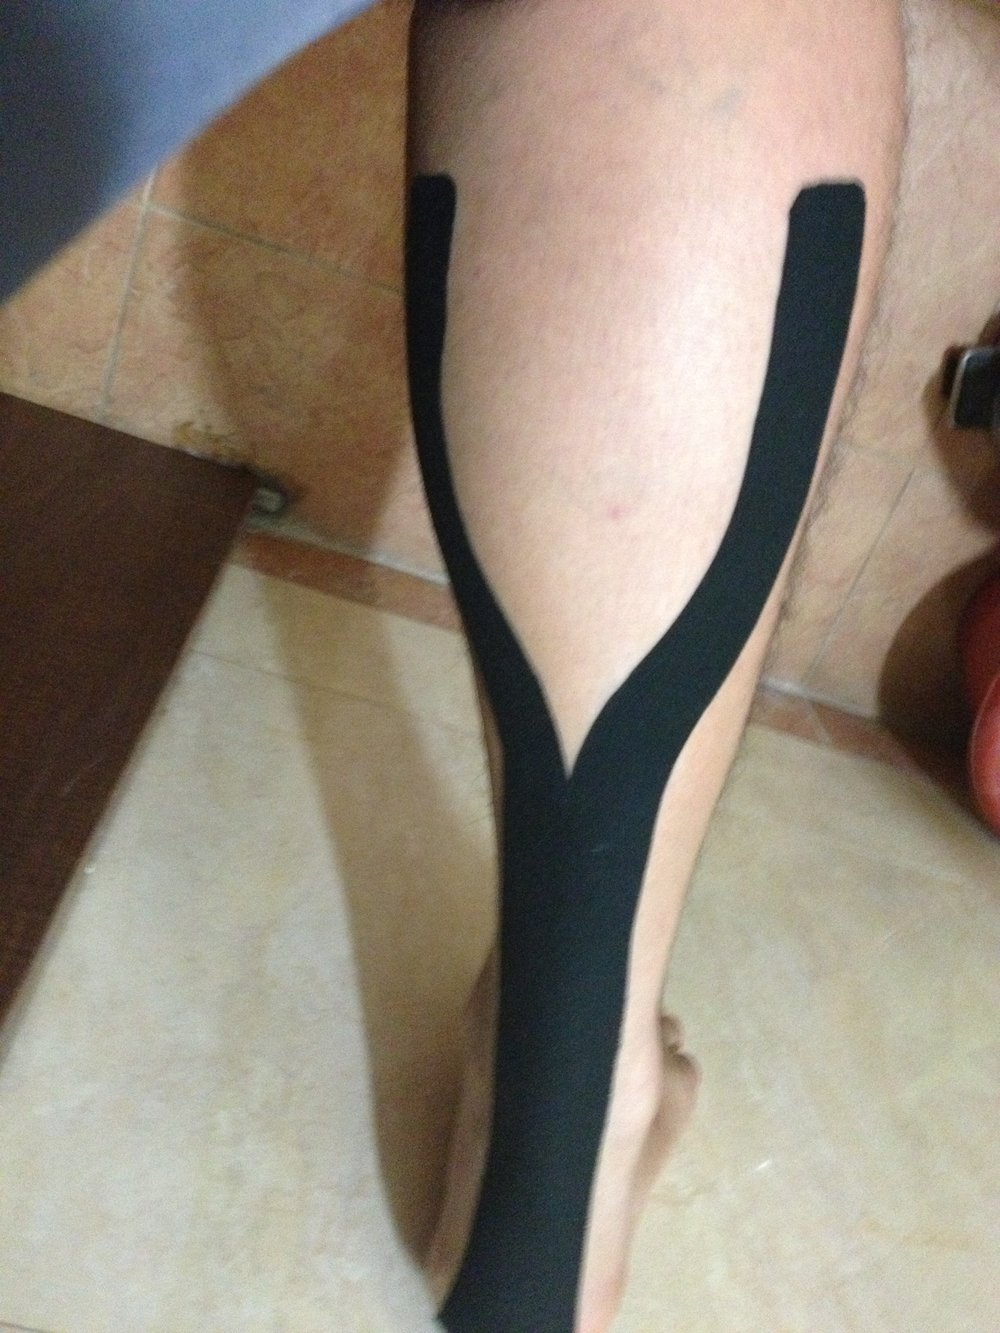 image source: https://commons.wikimedia.org/wiki/File:Kinesio_Taping_for_Soleus_and_Achilles_tendon.jpg